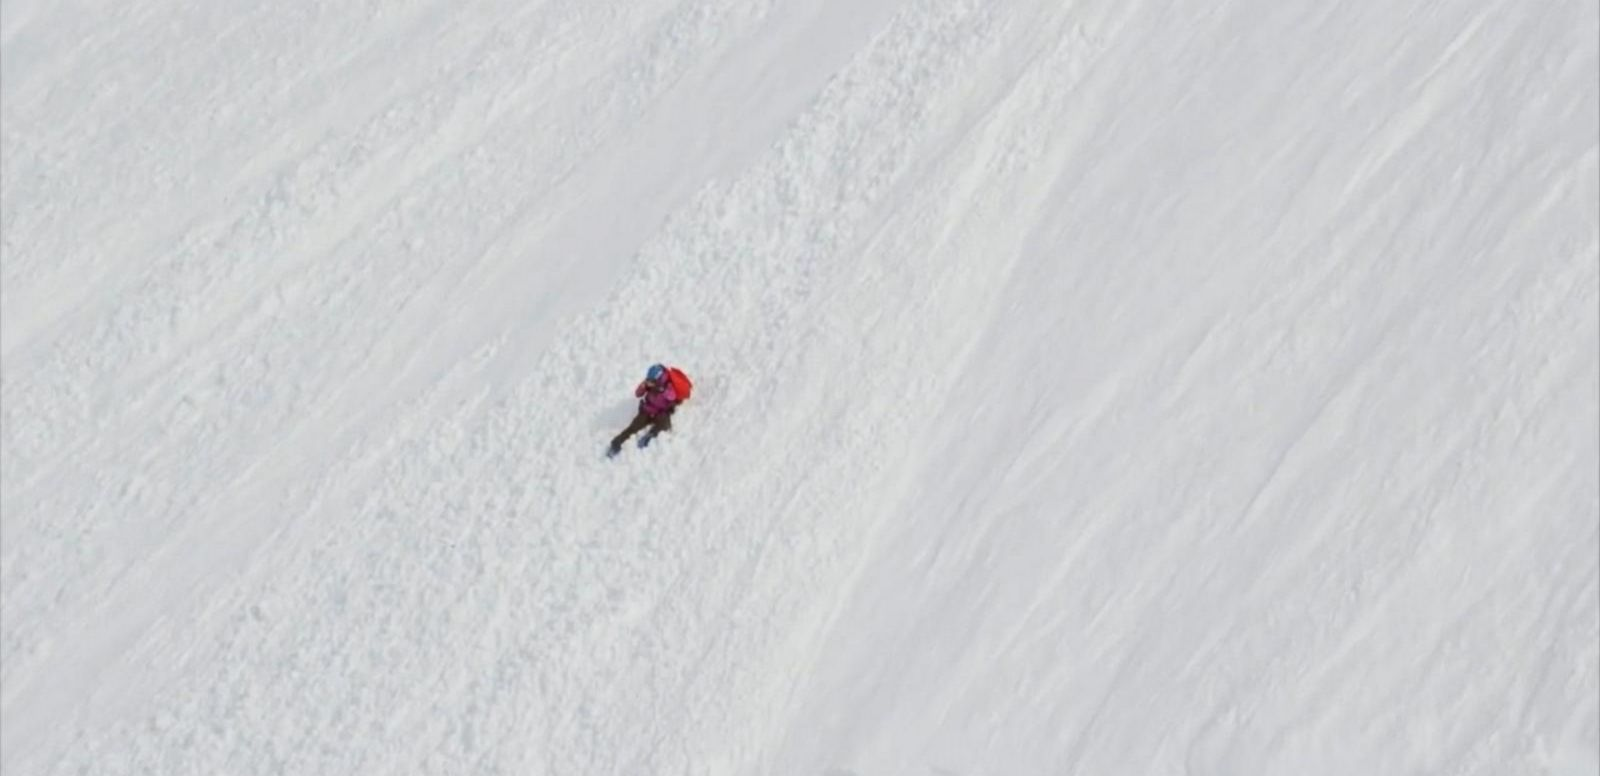 VIDEO: Angel Collinson was skiing in the Neacola Range in Alaska when she flipped onto her back and tumbled down.